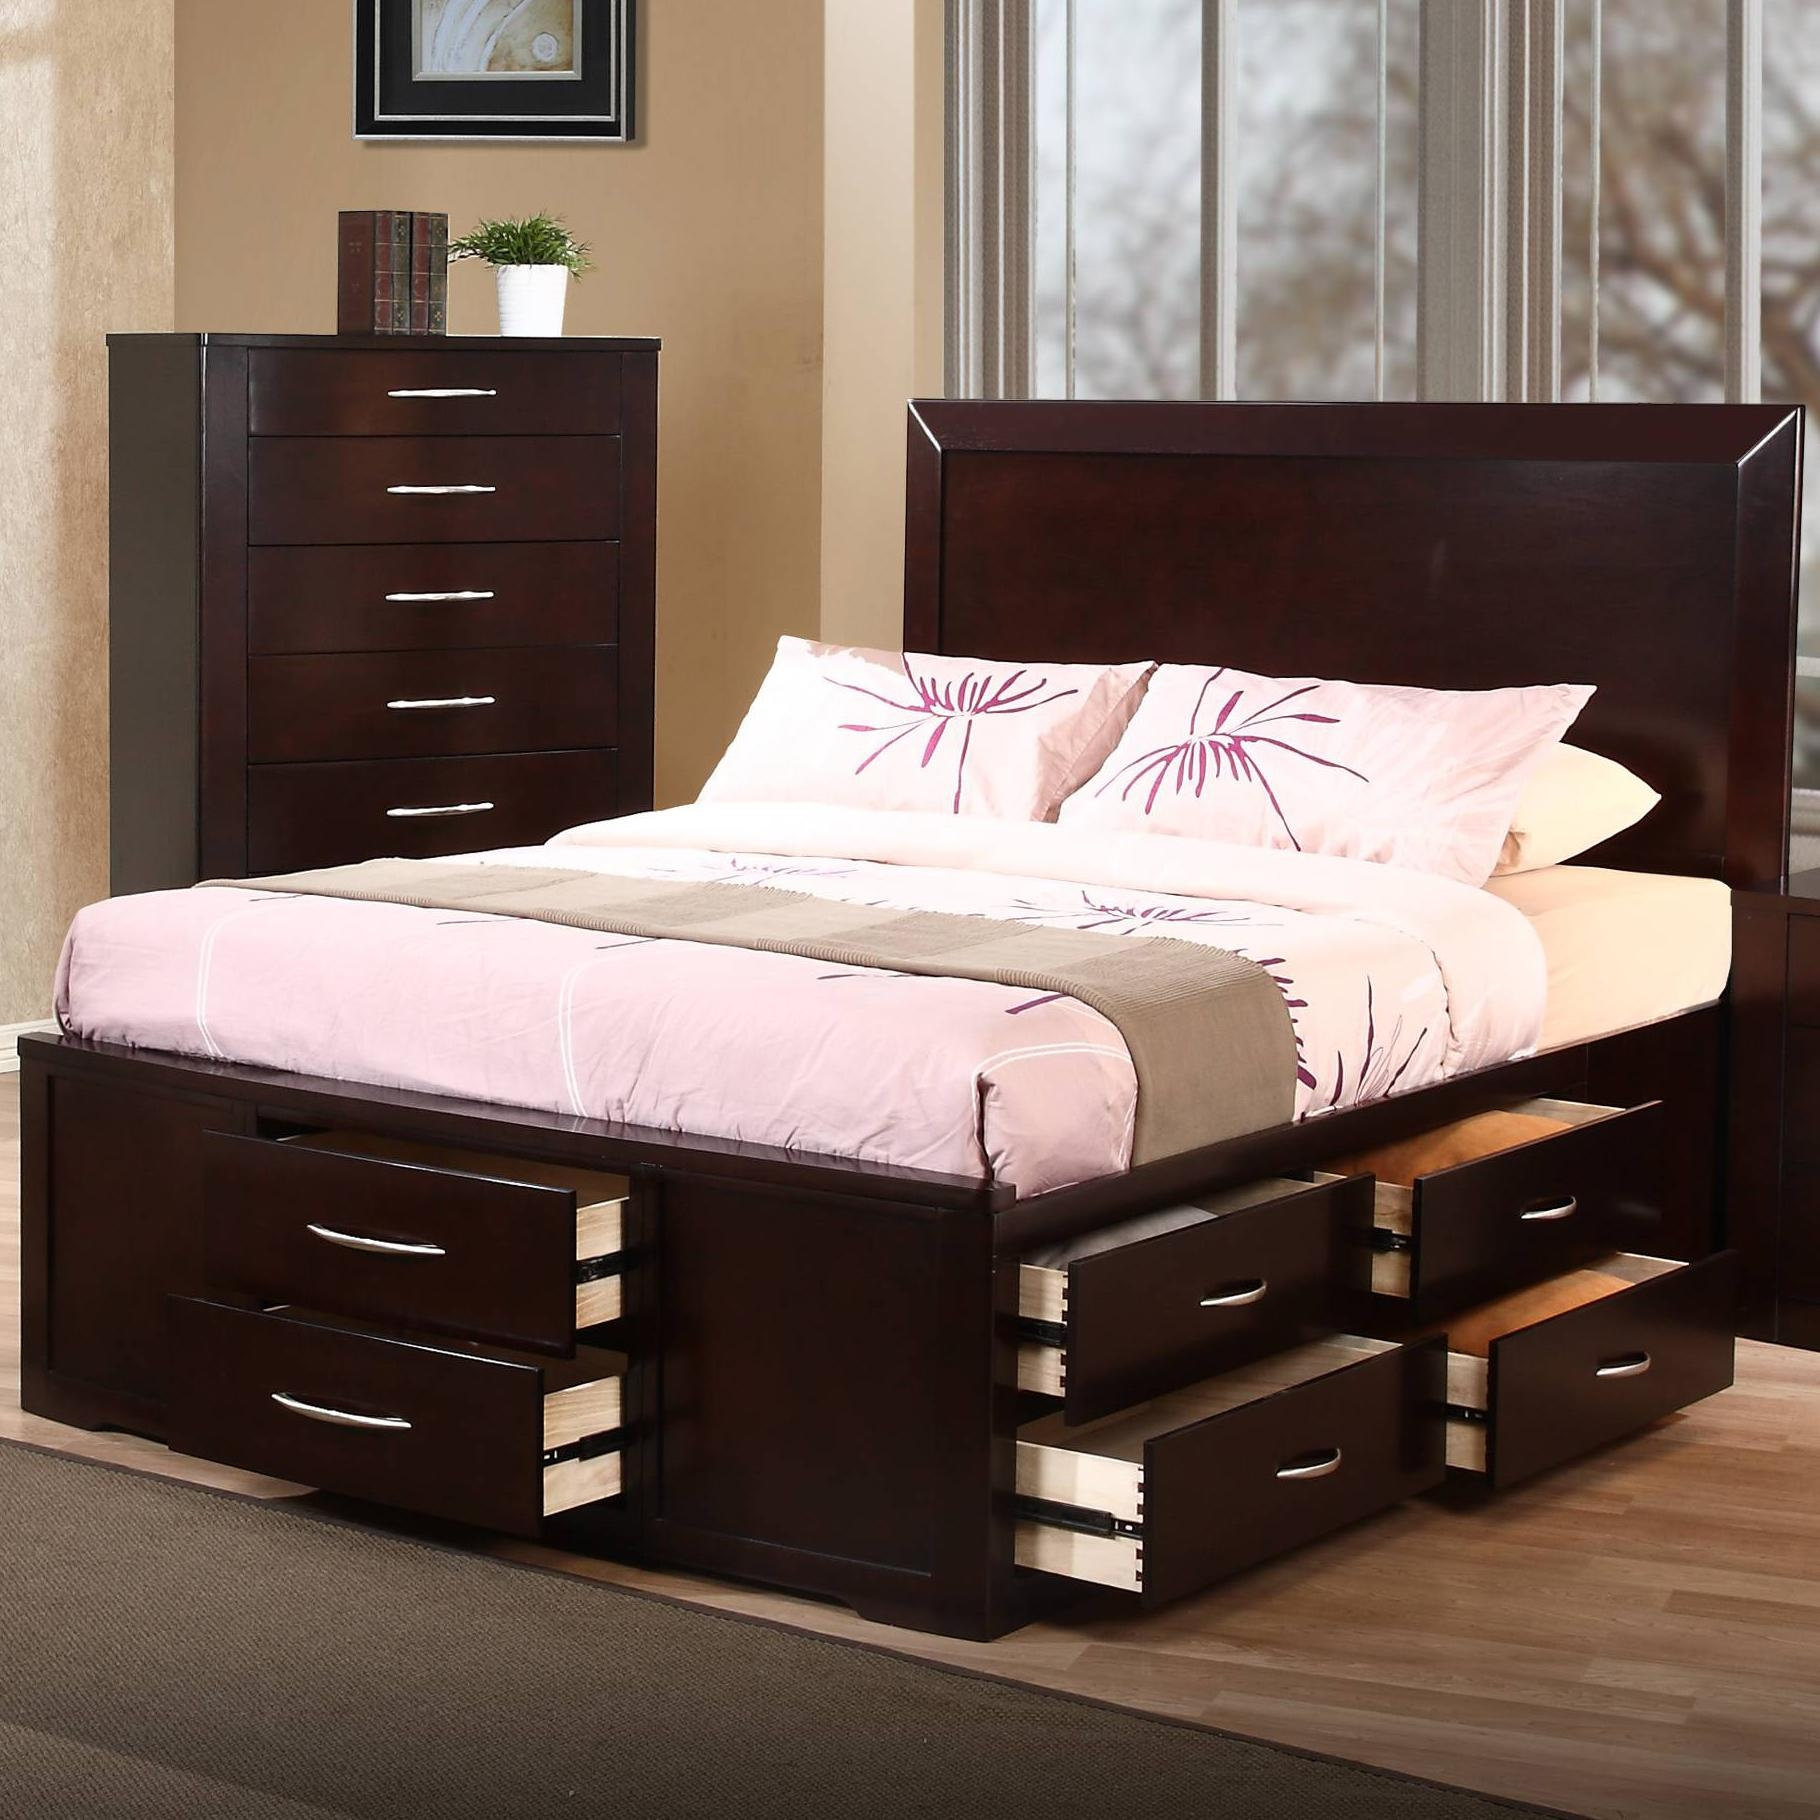 Permalink to Platform Bed Frame Queen With Drawers